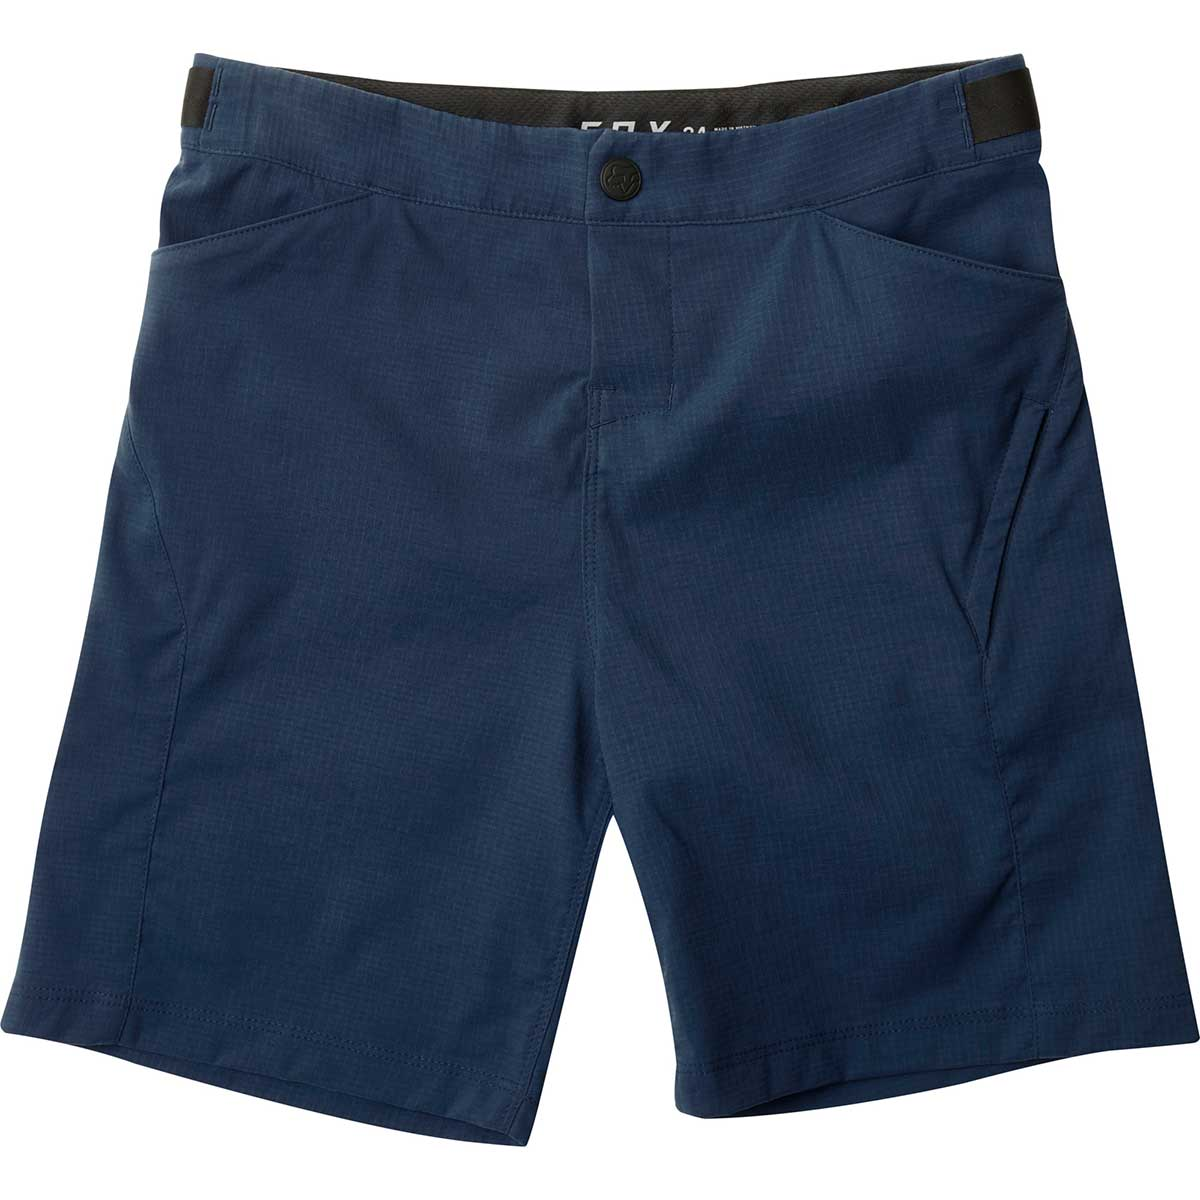 Fox kids' Ranger Short in Navy